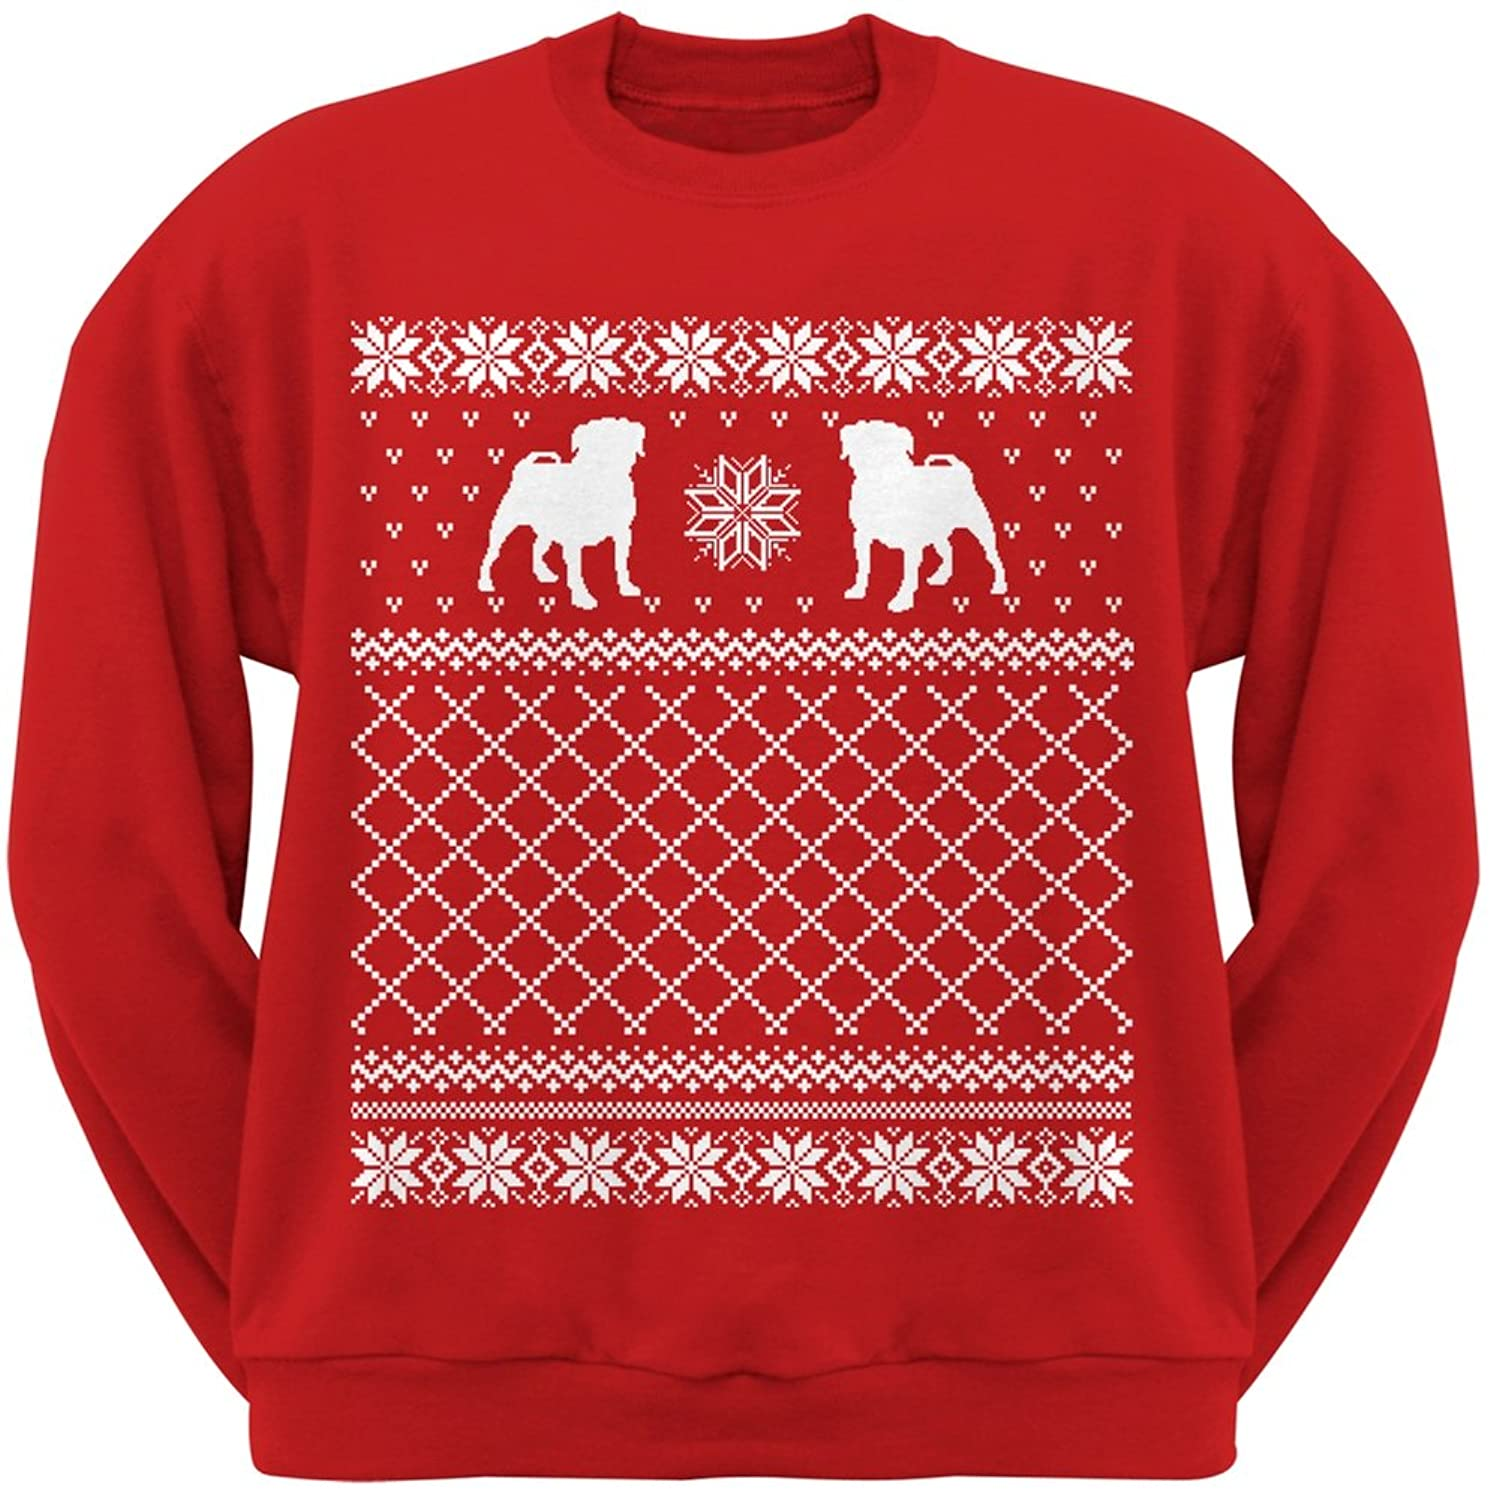 Amazon.com: Pug Ugly Christmas Sweater Red Crew Neck Sweatshirt ...